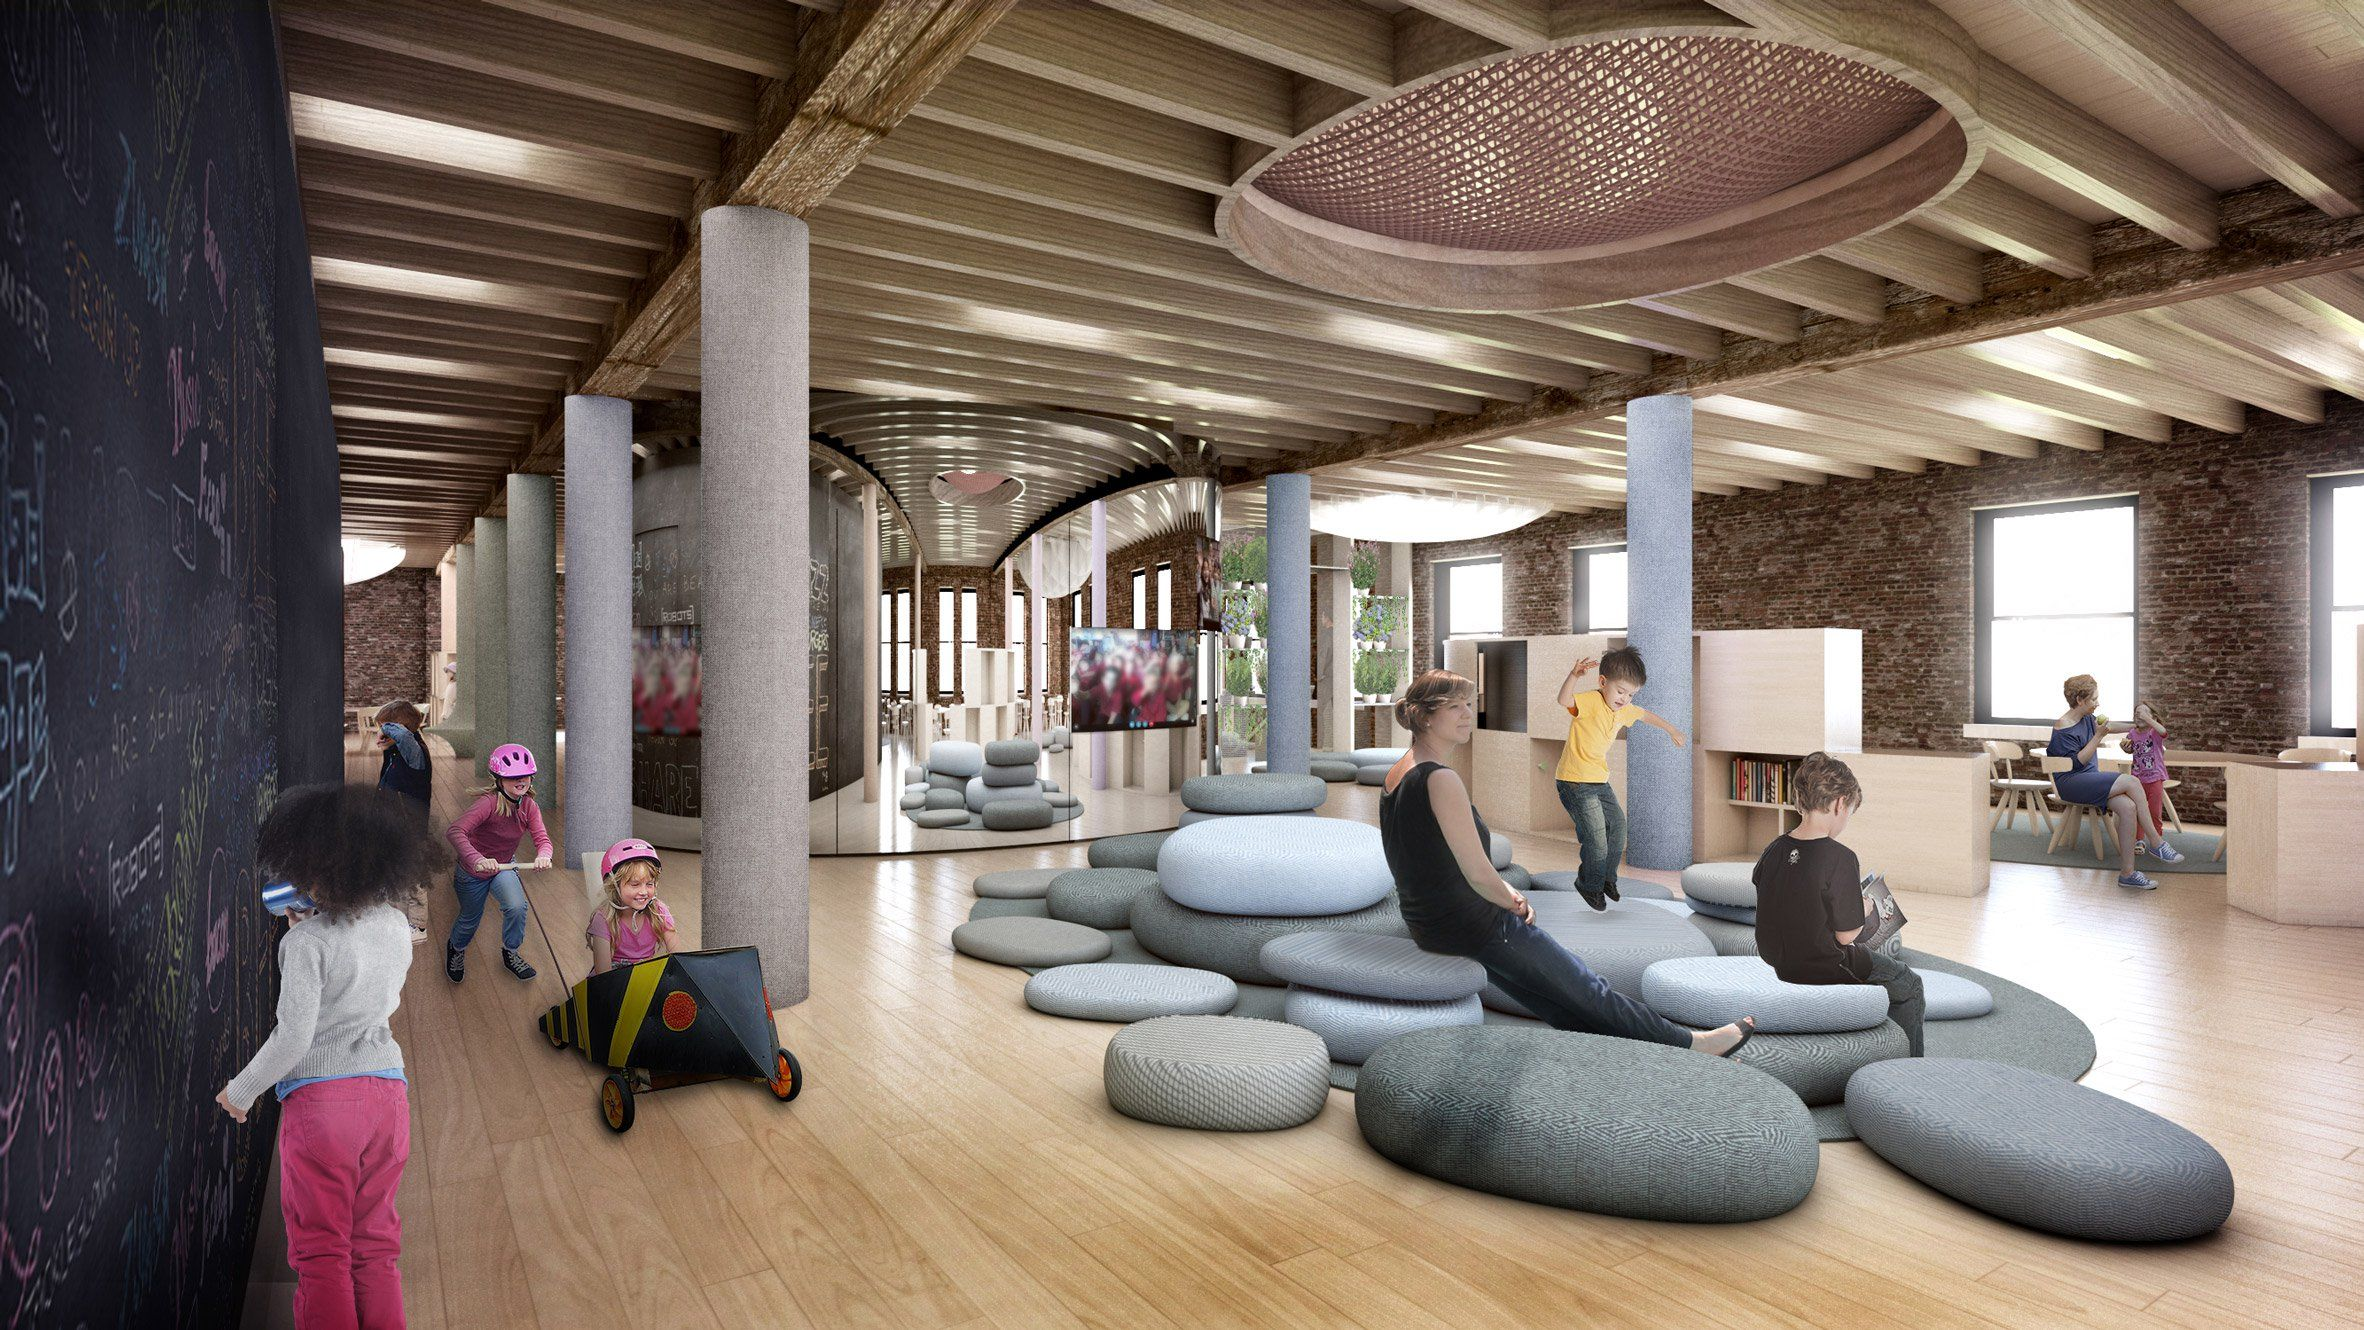 WeWork is continuing its expansion beyond coworking with a